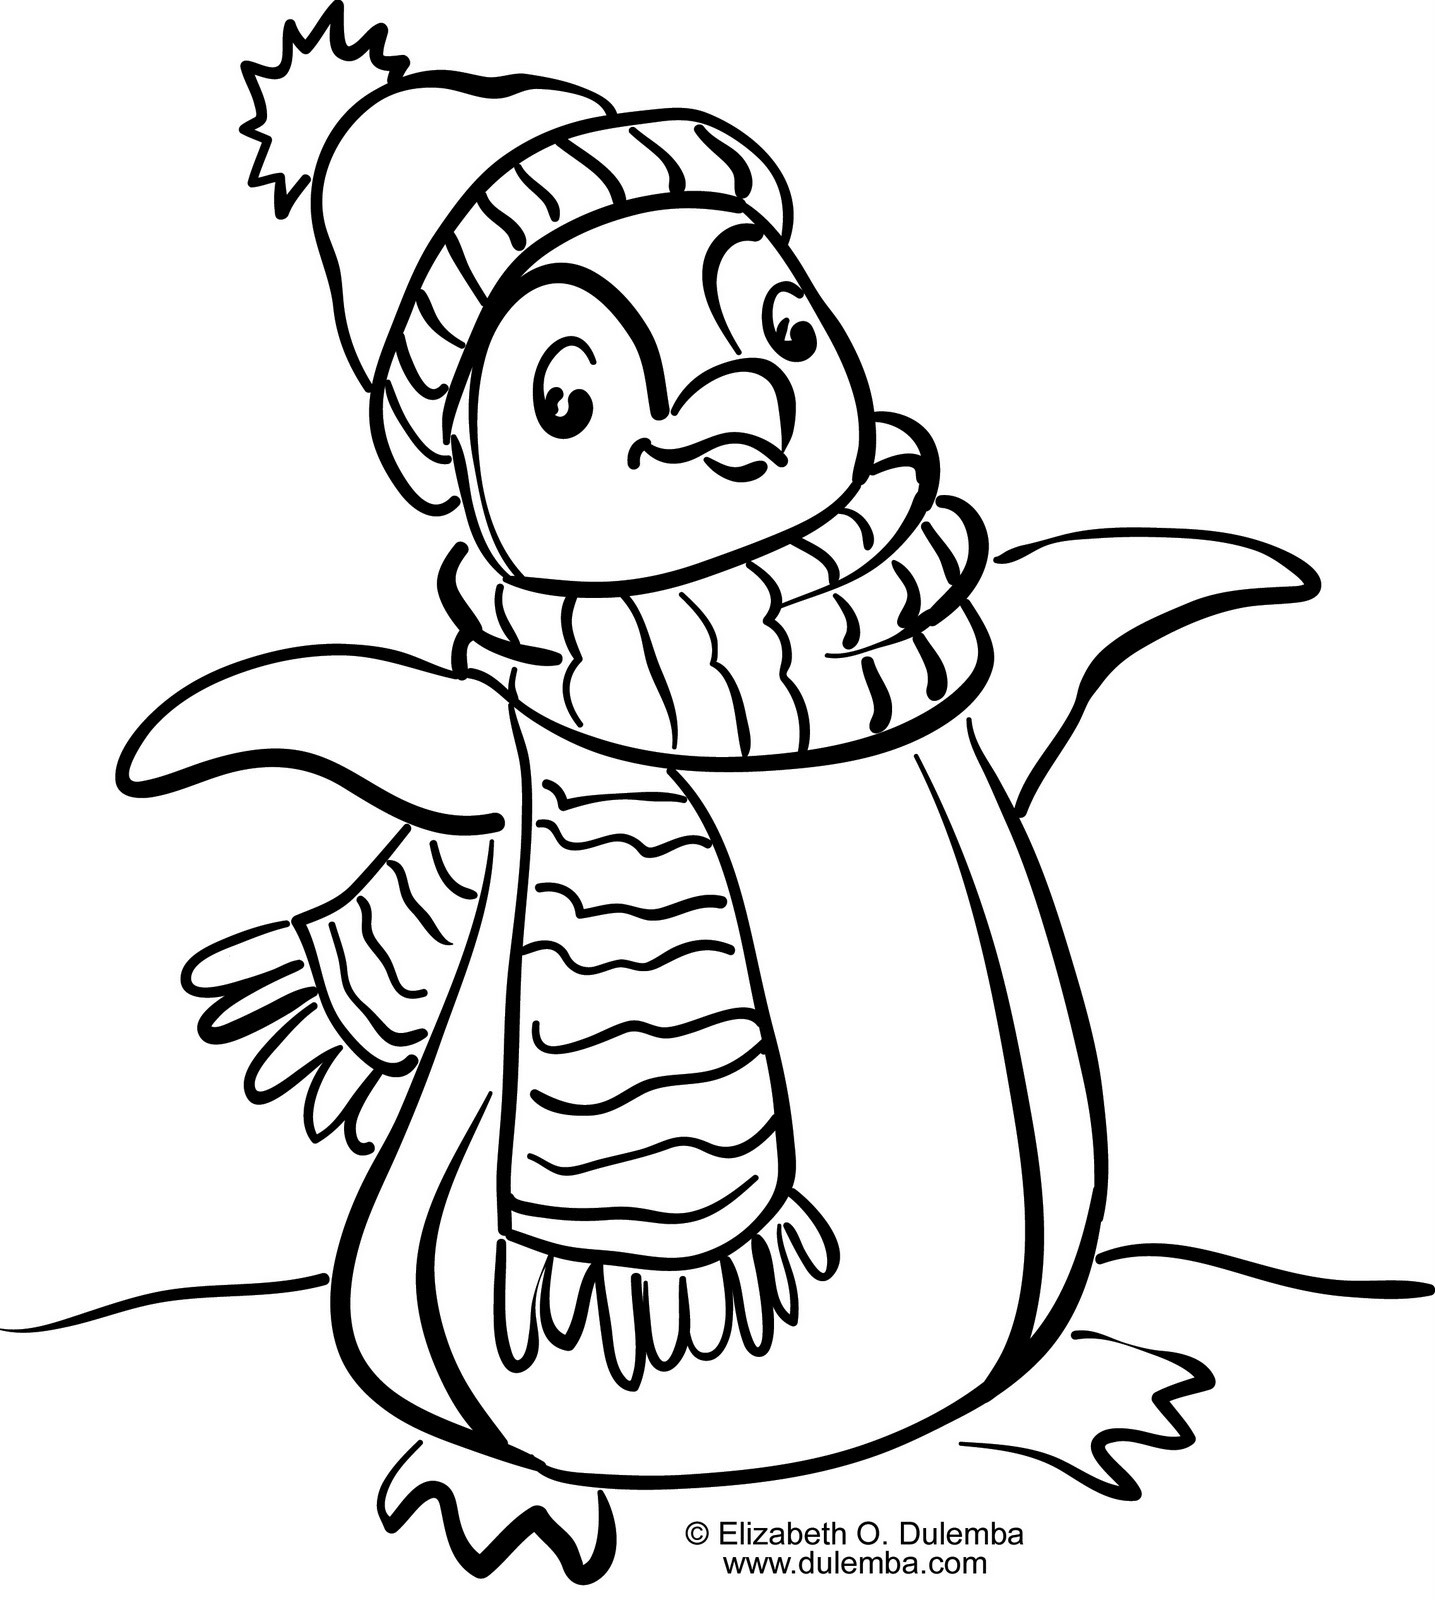 Best ideas about Feet Coloring Pages For Kids . Save or Pin Printable Happy Feet Coloring Pages Now.